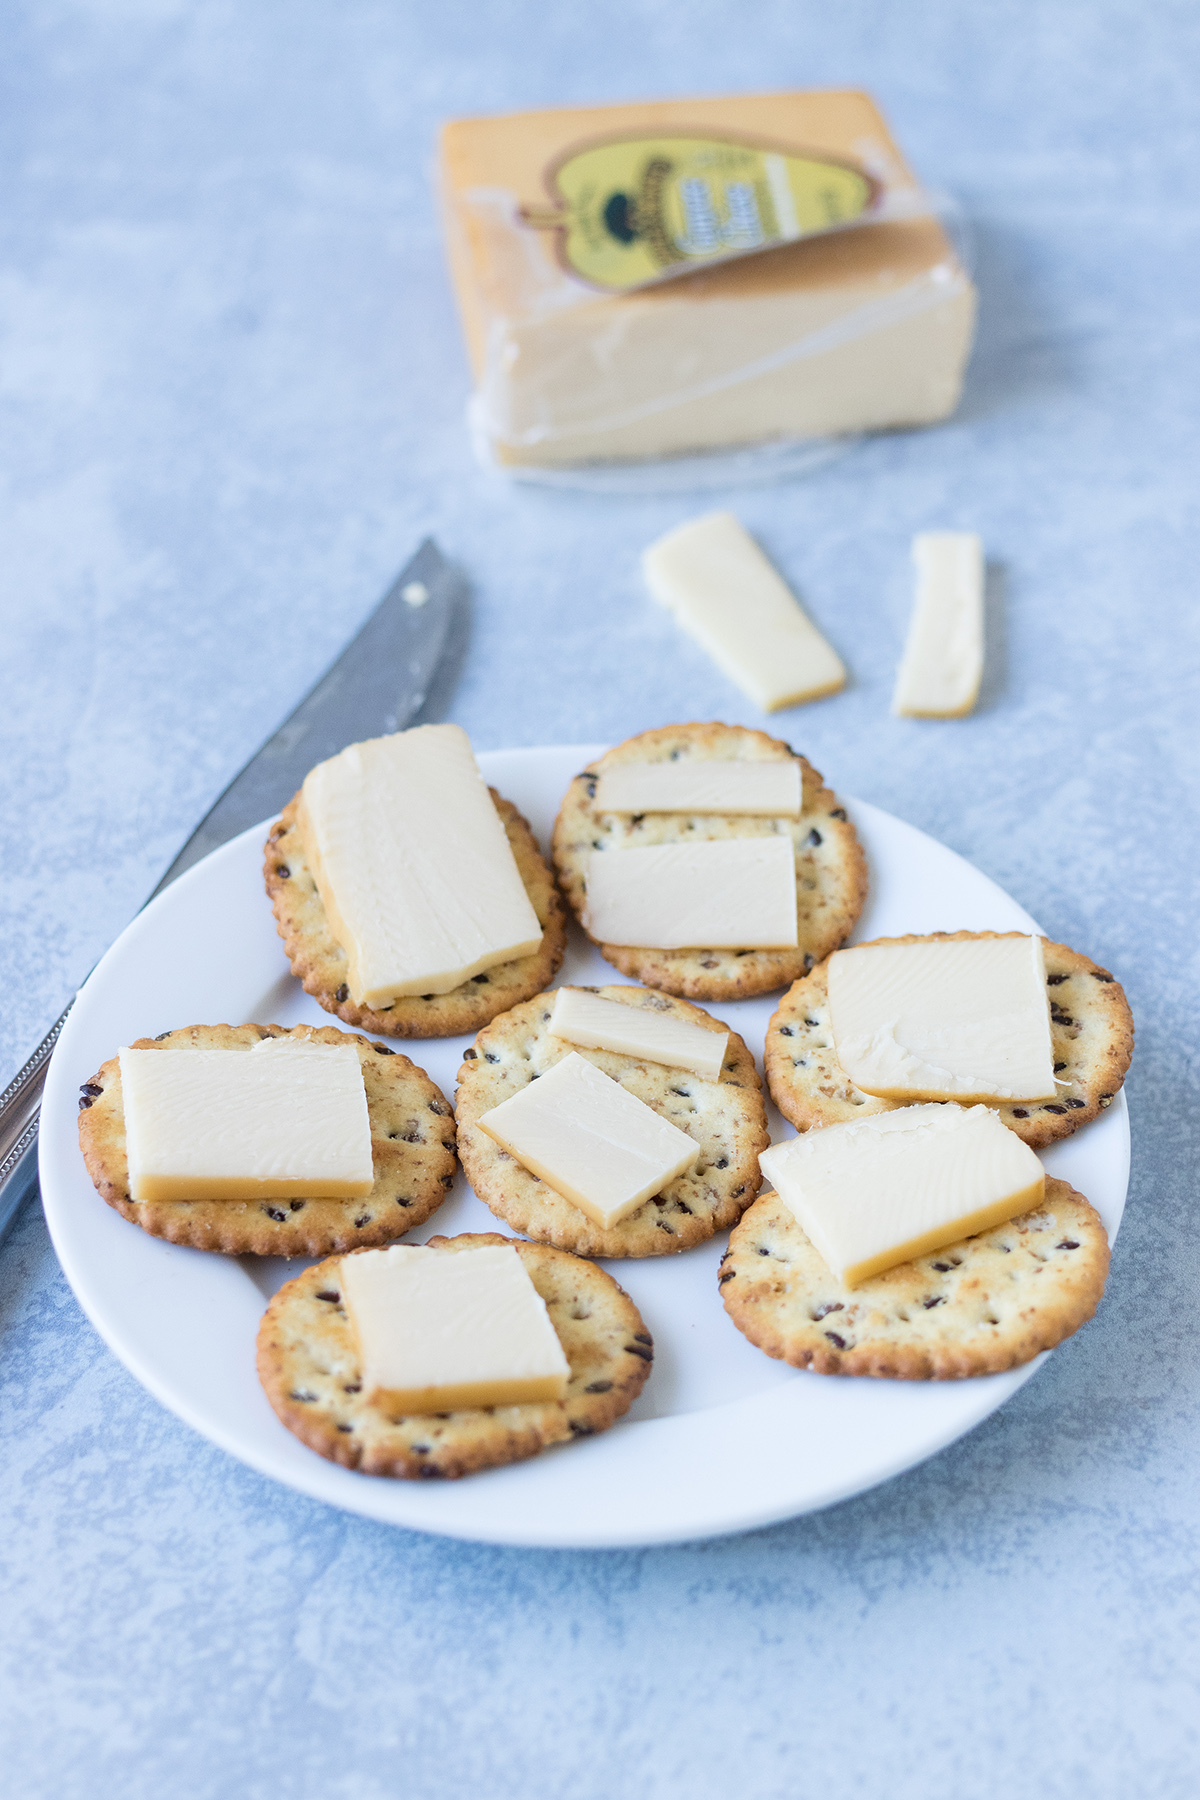 Whole Grain Crackers and Cheese